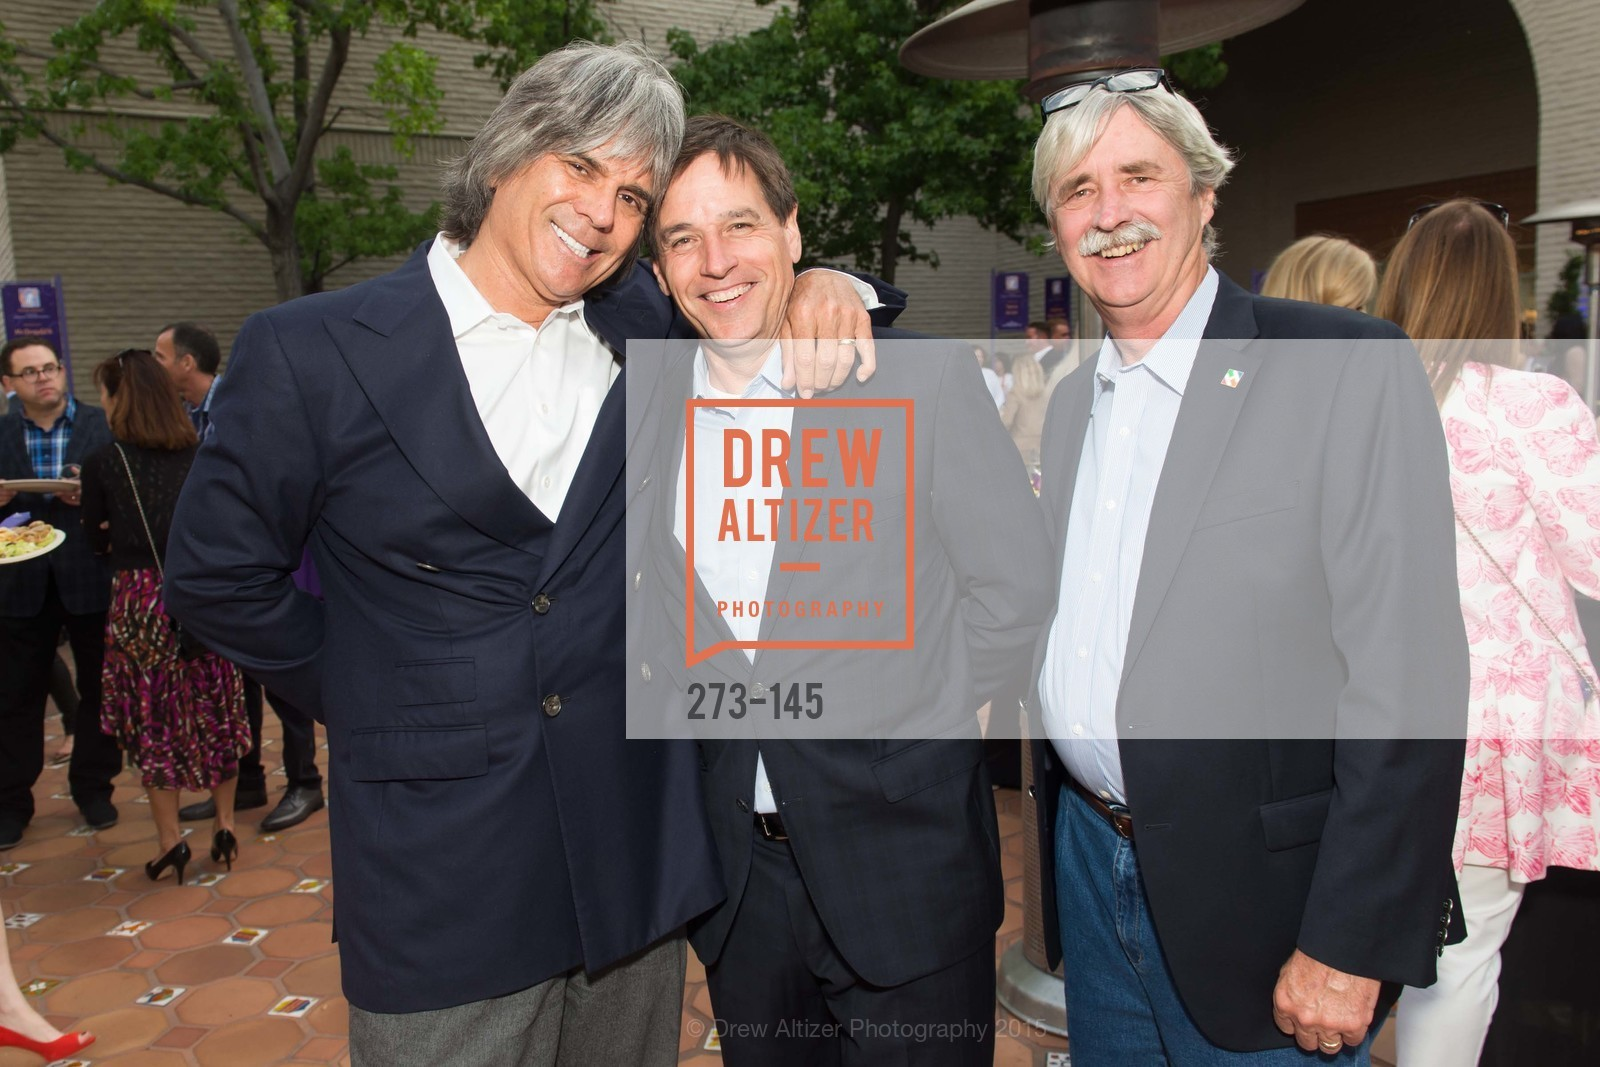 Nikita Krushchev, Kevin Marks, Bill Palmer, DREAMS HAPPEN: Playhouse Auction and Gala, Stanford Shopping Center, June 5th, 2015,Drew Altizer, Drew Altizer Photography, full-service agency, private events, San Francisco photographer, photographer california